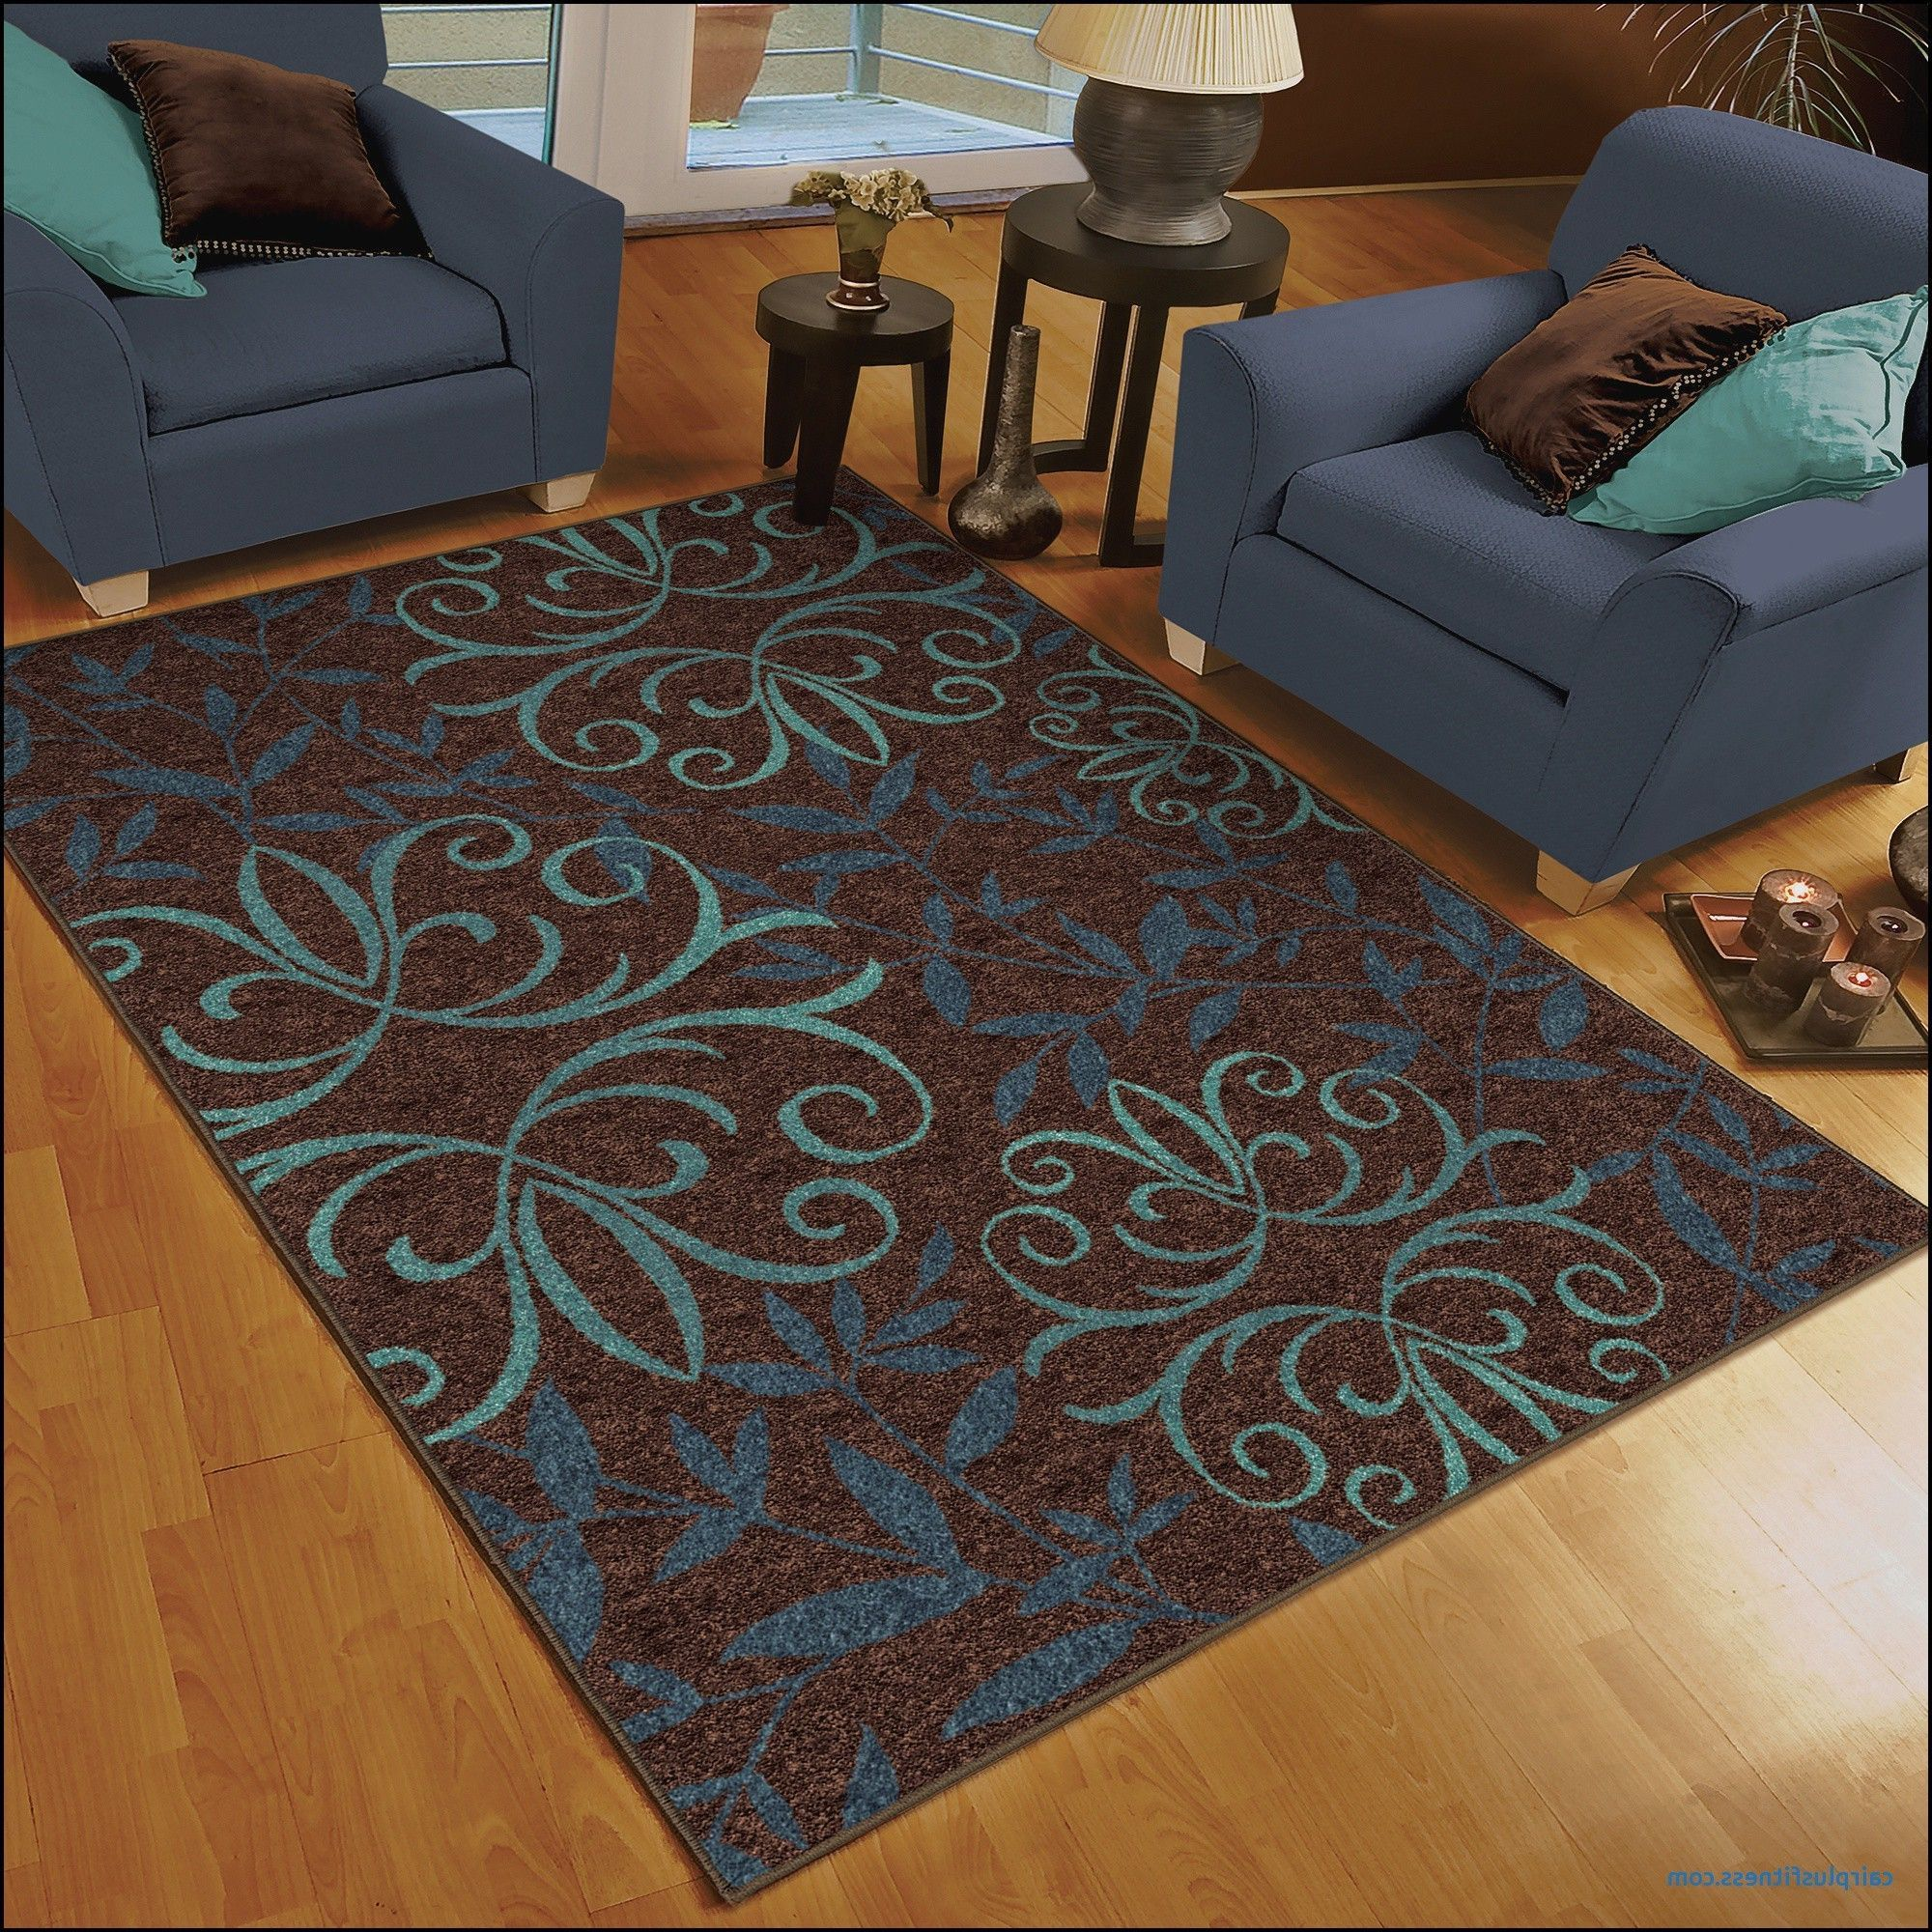 30 Lovely Walmart Area Rug Sets To Inspire You Area Rug Sets